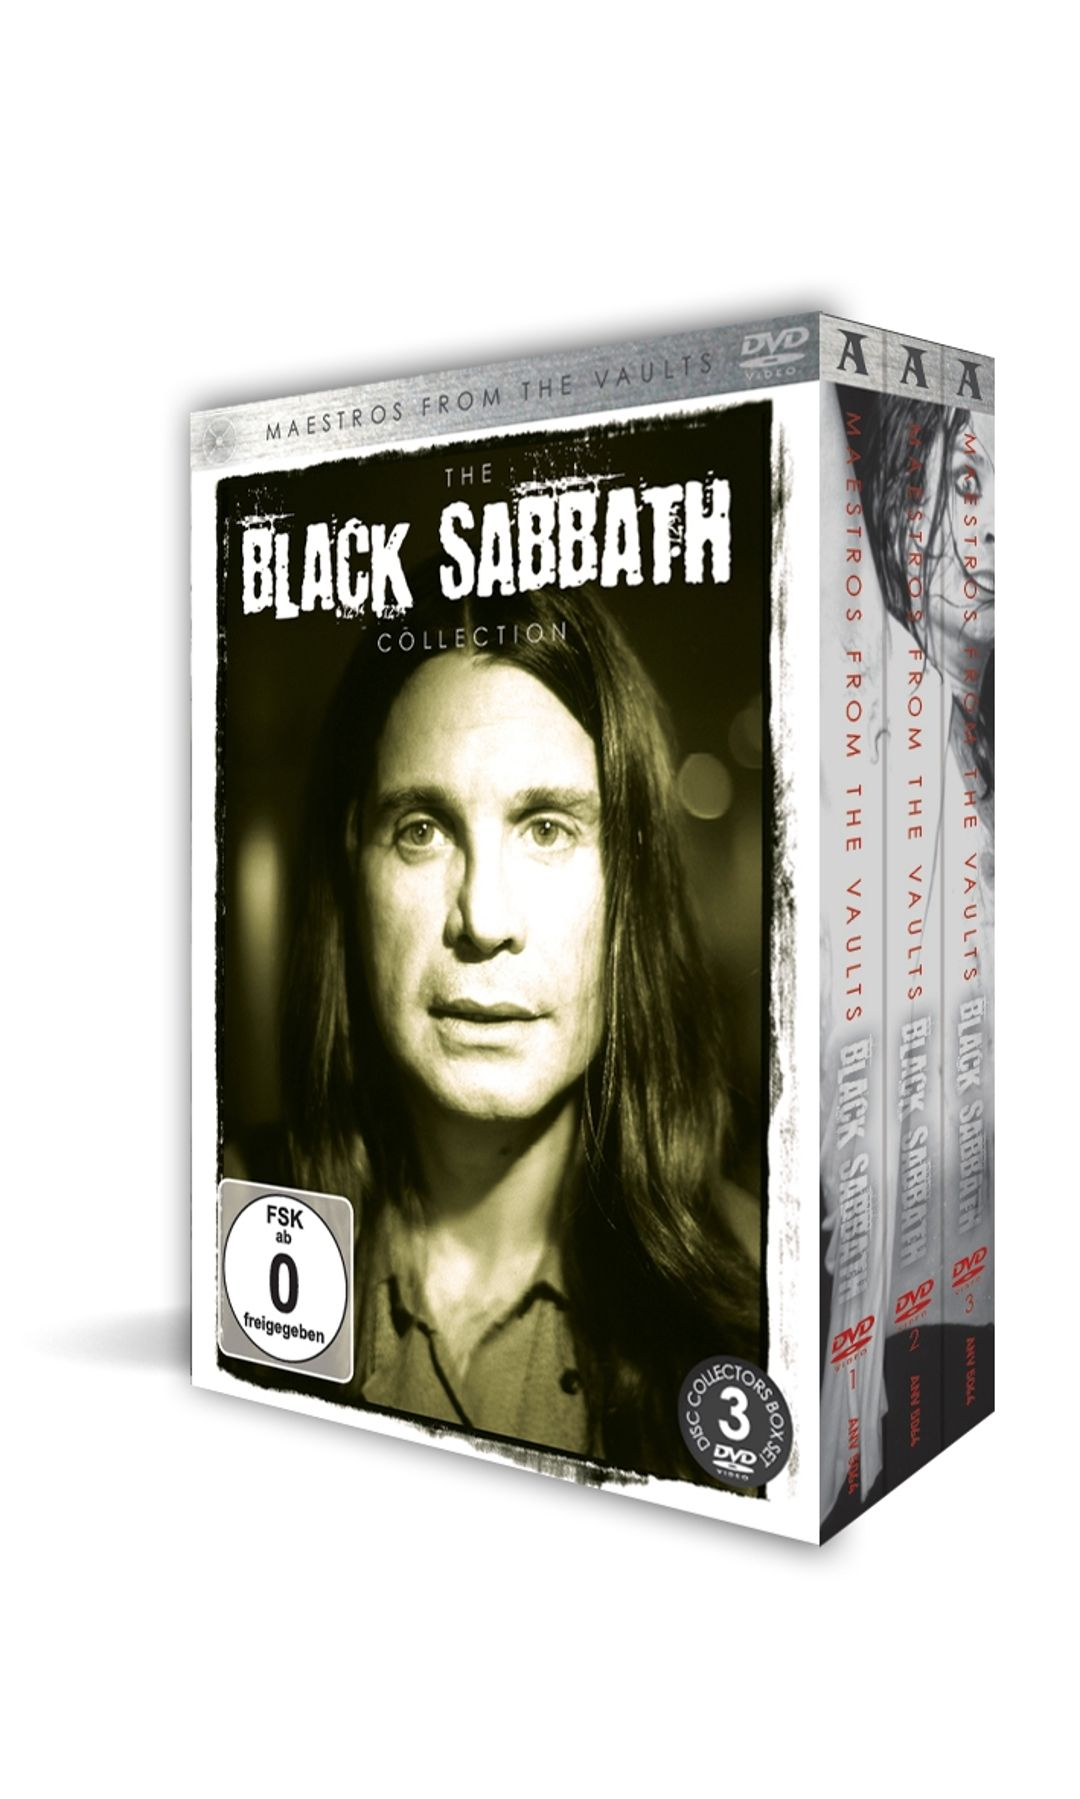 Maestros from the Vaults: The Black Sabbath Collection